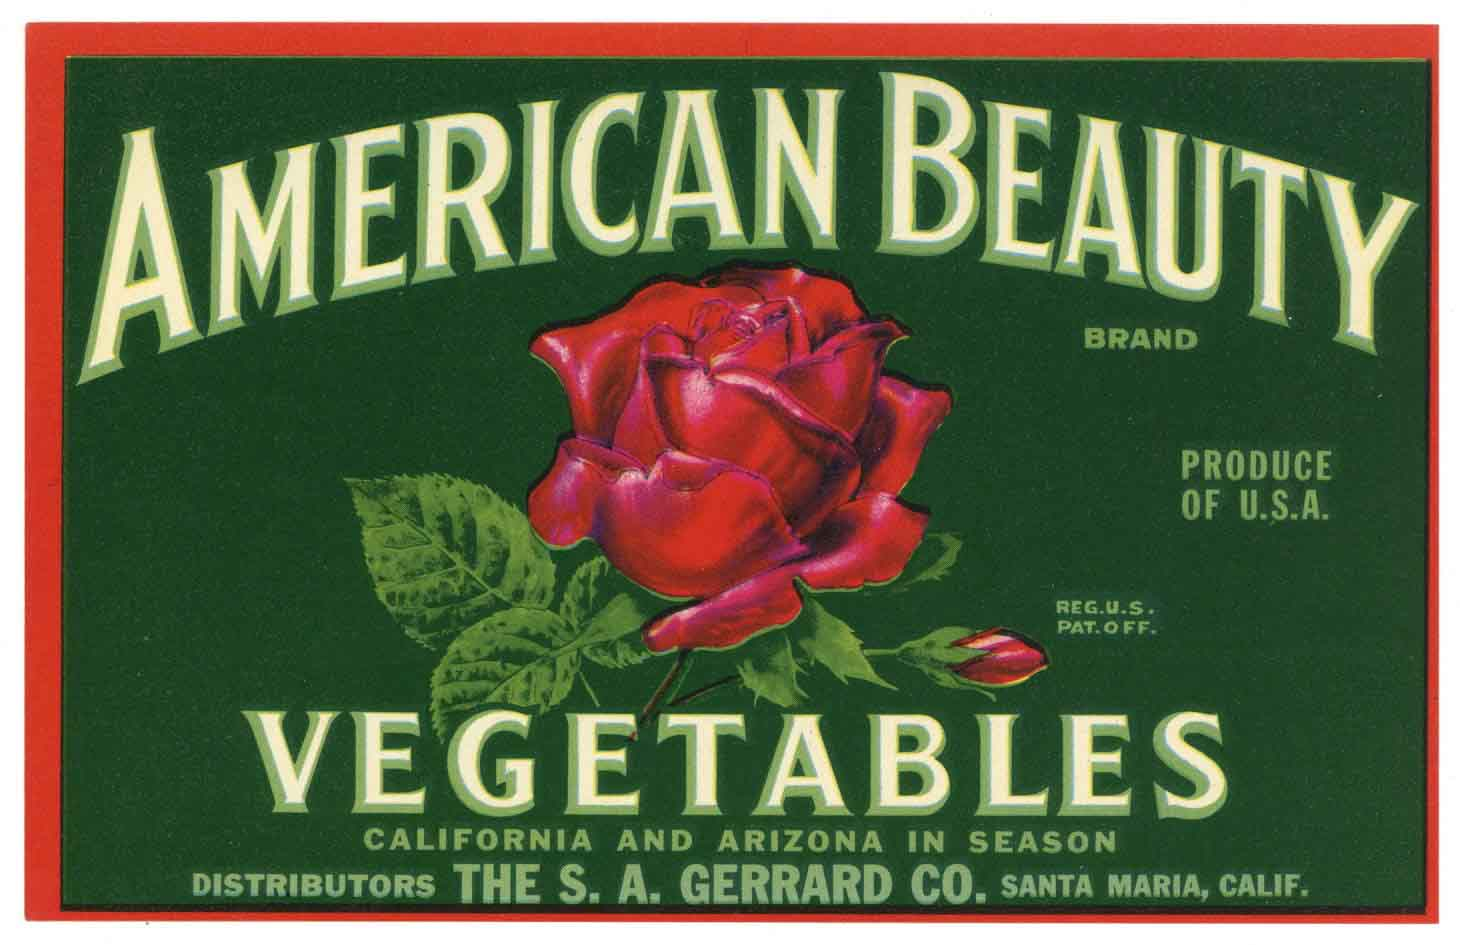 American Beauty Brand Vintage Vegetable Crate Label